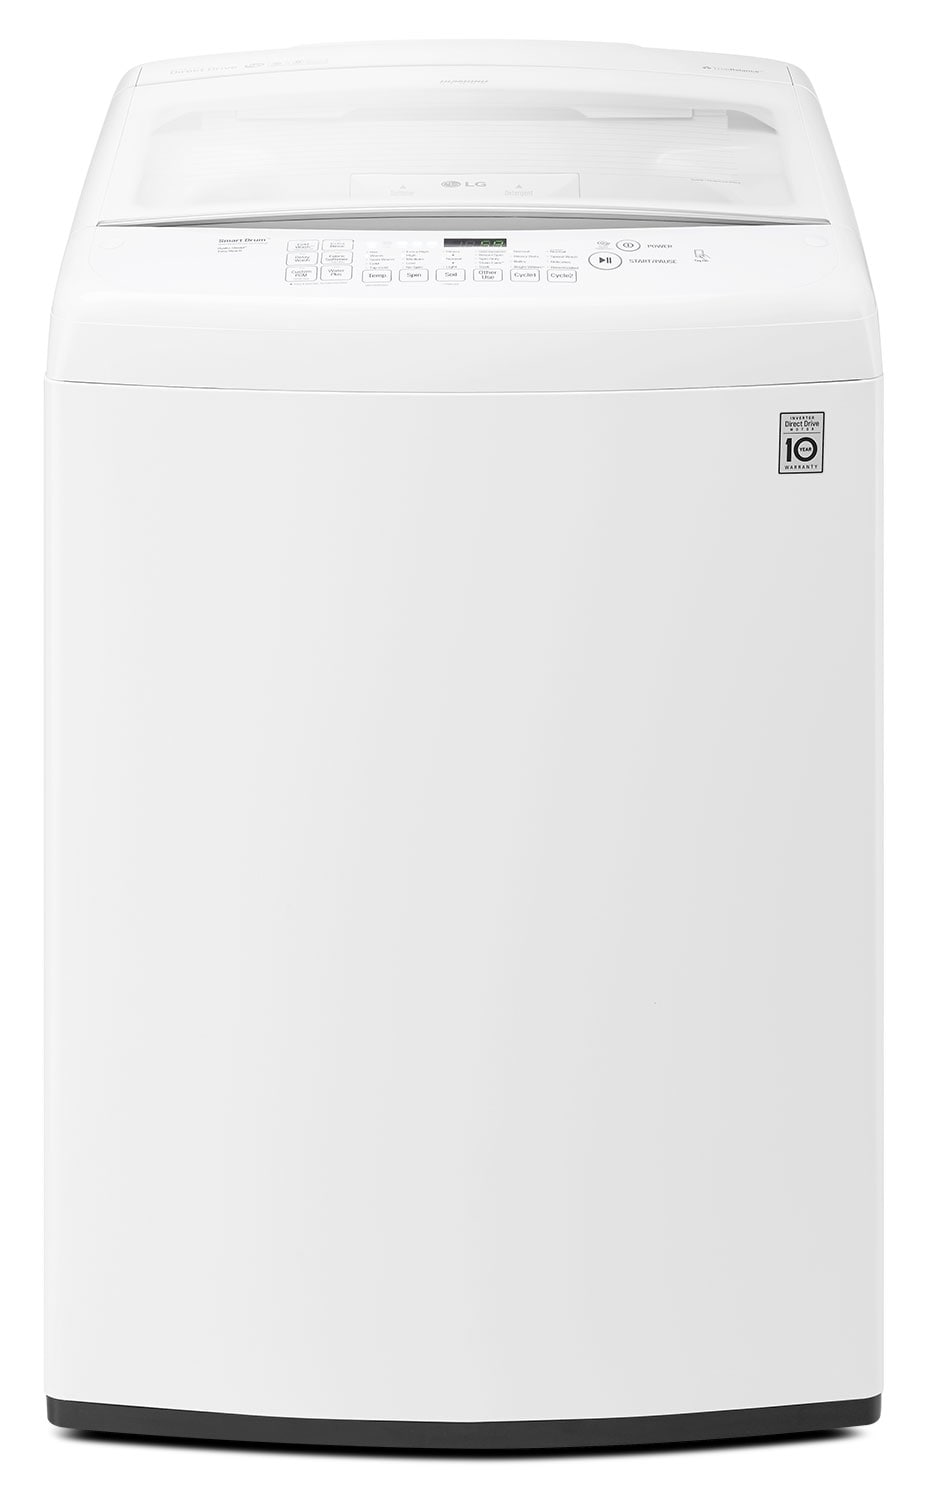 Washers and Dryers - LG Appliances White Top-Load Electric Washer (5.2 Cu. Ft. IEC) - WT1501CW